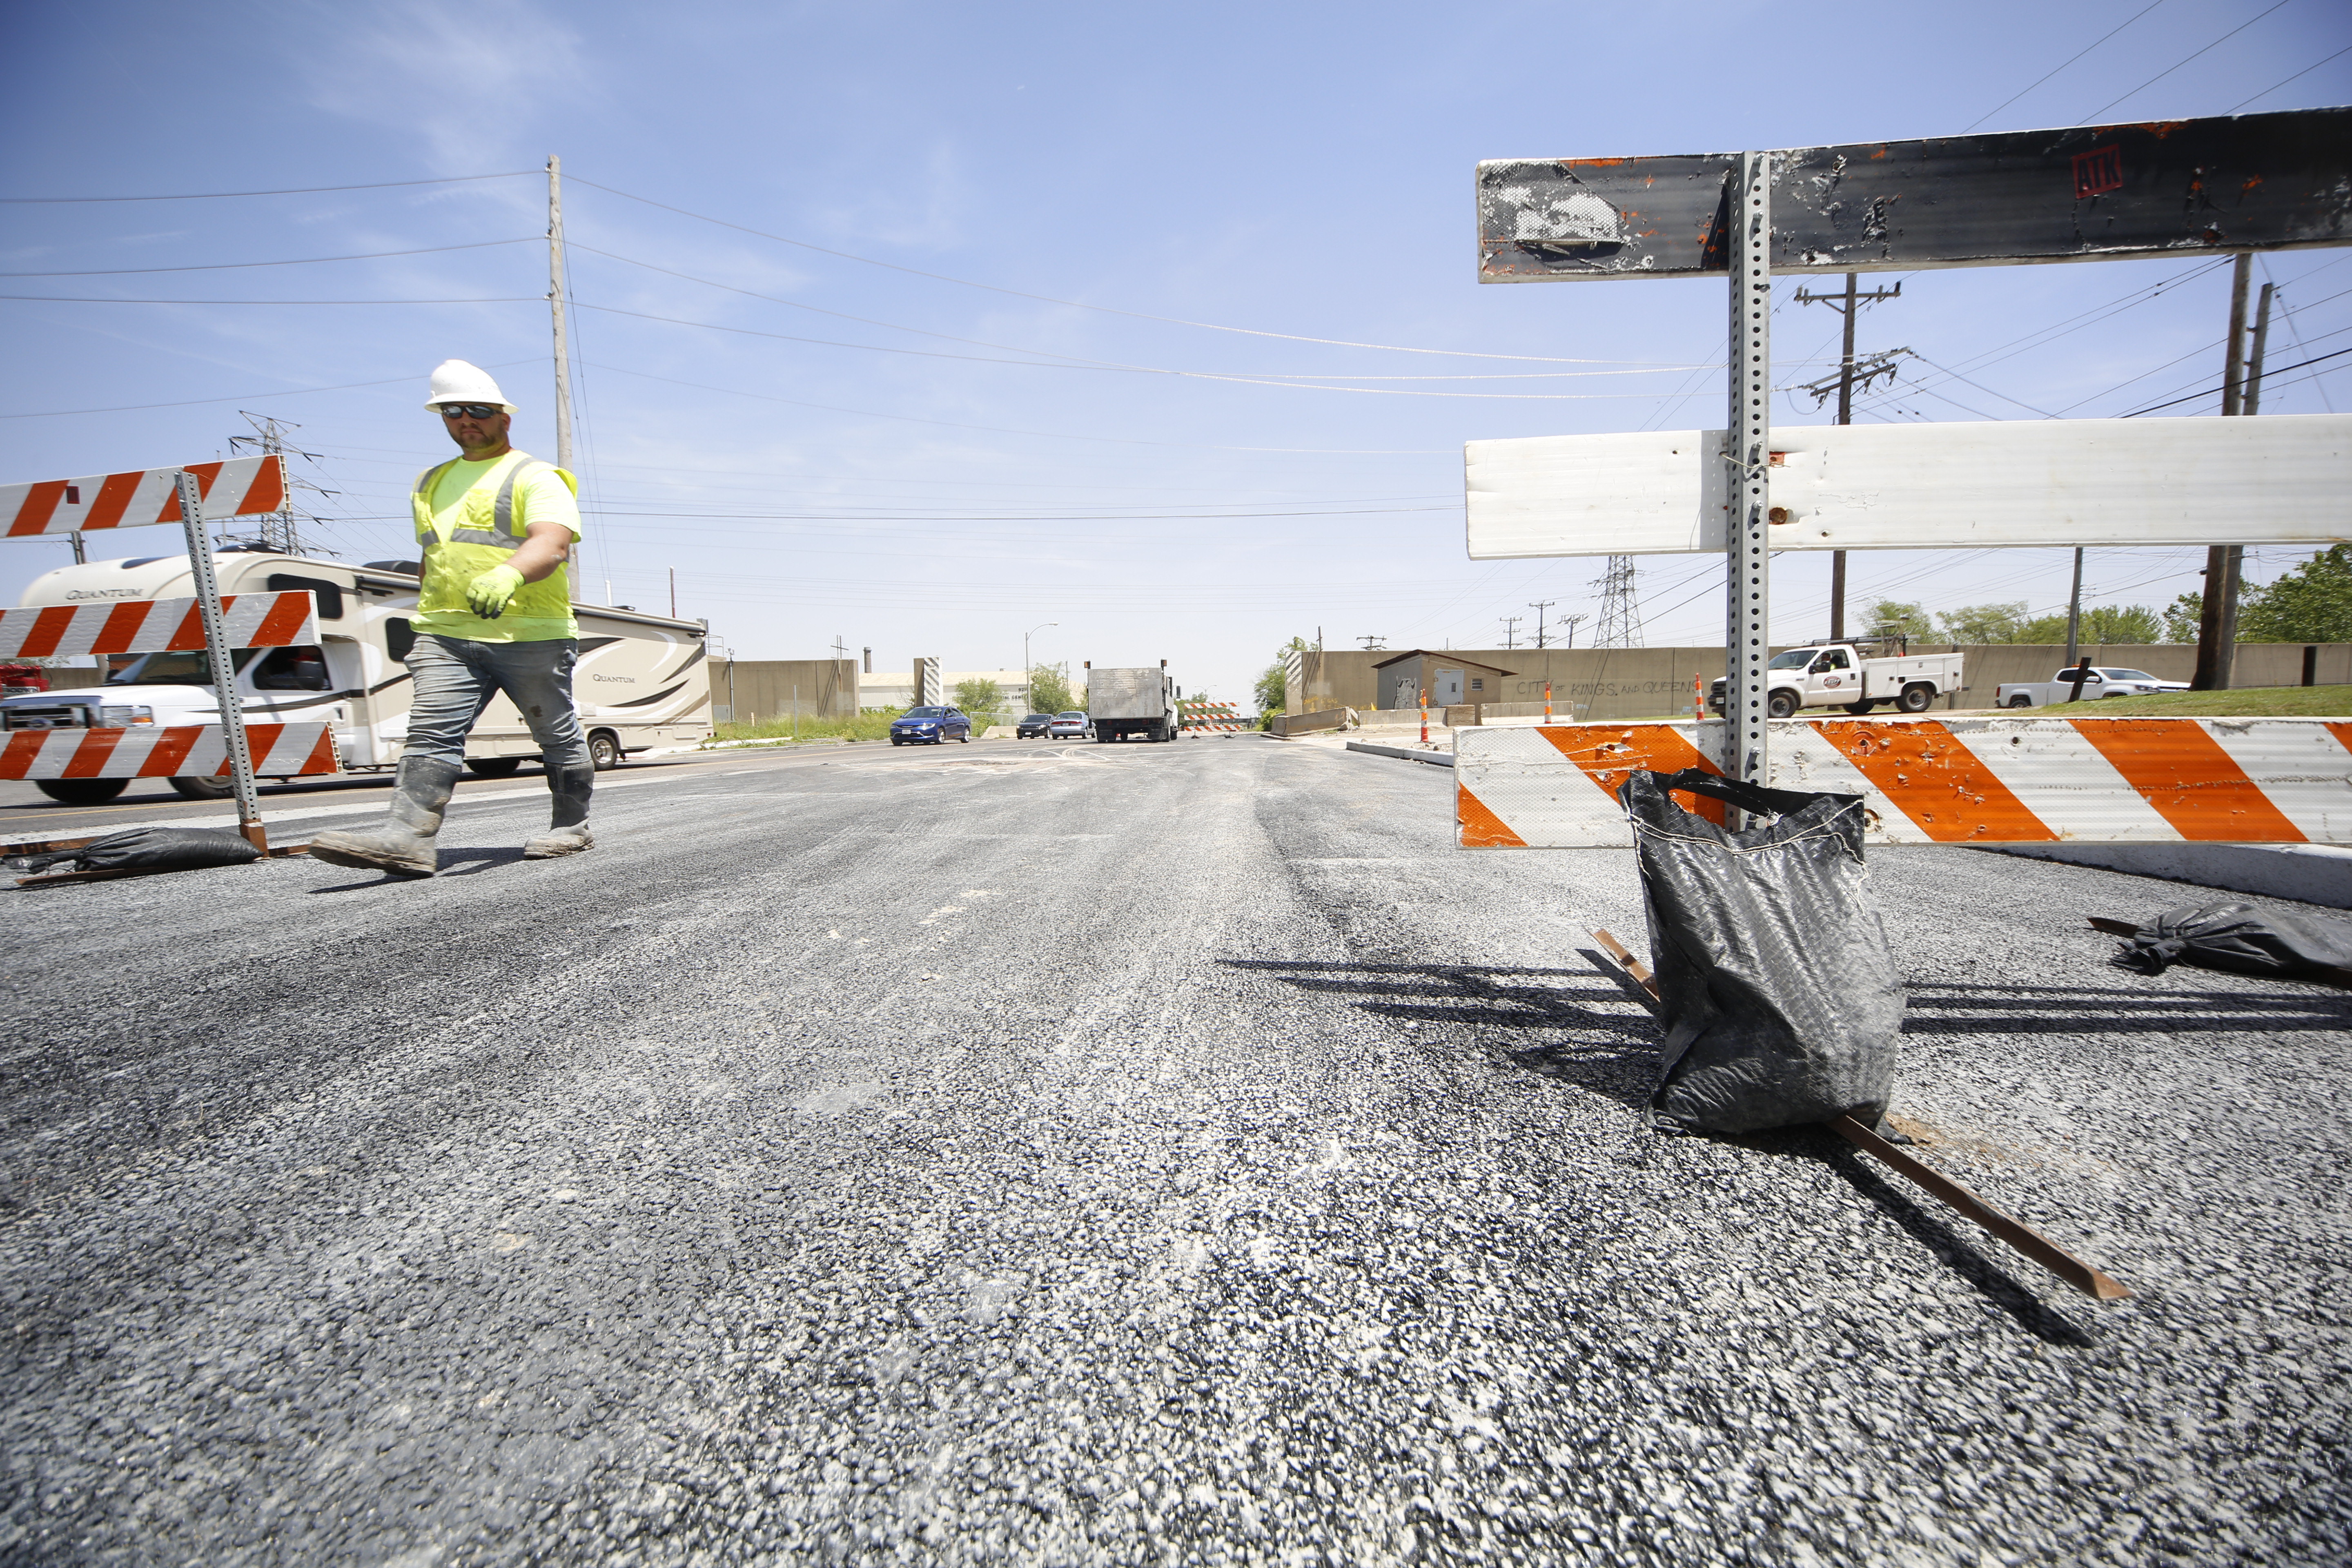 MoDOT asks residents for suggestions on calming Riverview Blvd. traffic